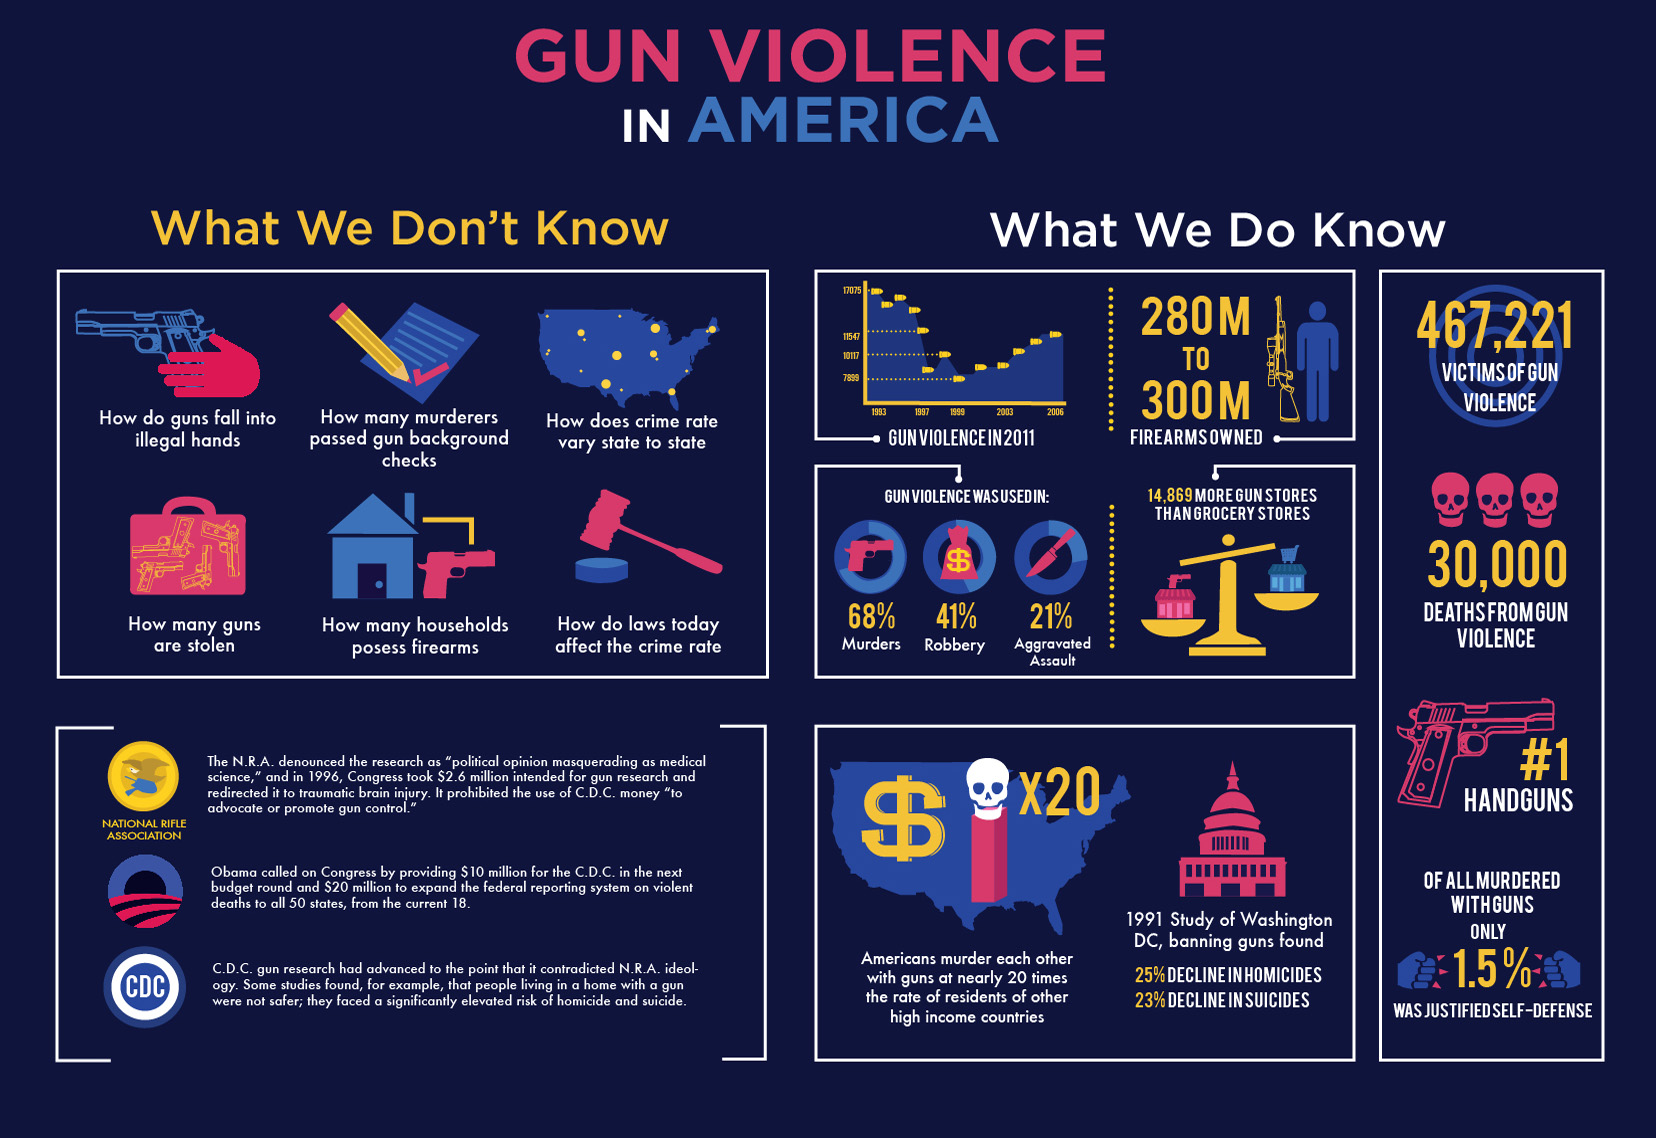 a paper on gun control in the united states Writing thesis statement for gun control research paper gun laws are one of the causes of violent crime in the united states of america and it must need to be changed for americans to purchase guns easier to protect themselves.